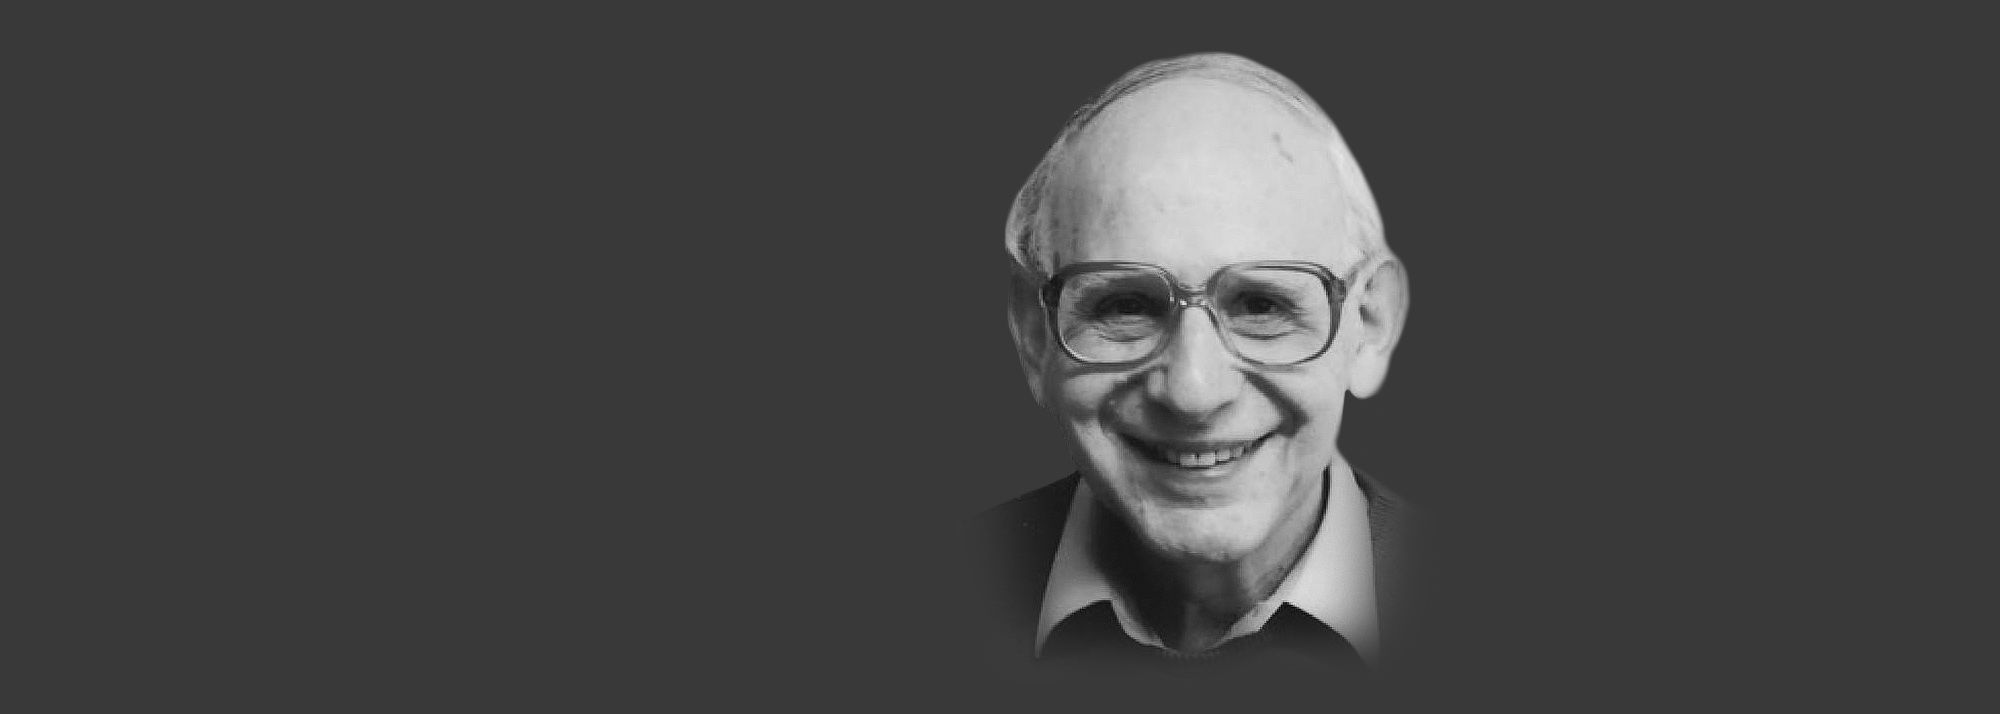 World Athletics is deeply saddened to hear that leading athletics writer and statistician Mel Watman died of cancer on Friday (17) at the age of 83.